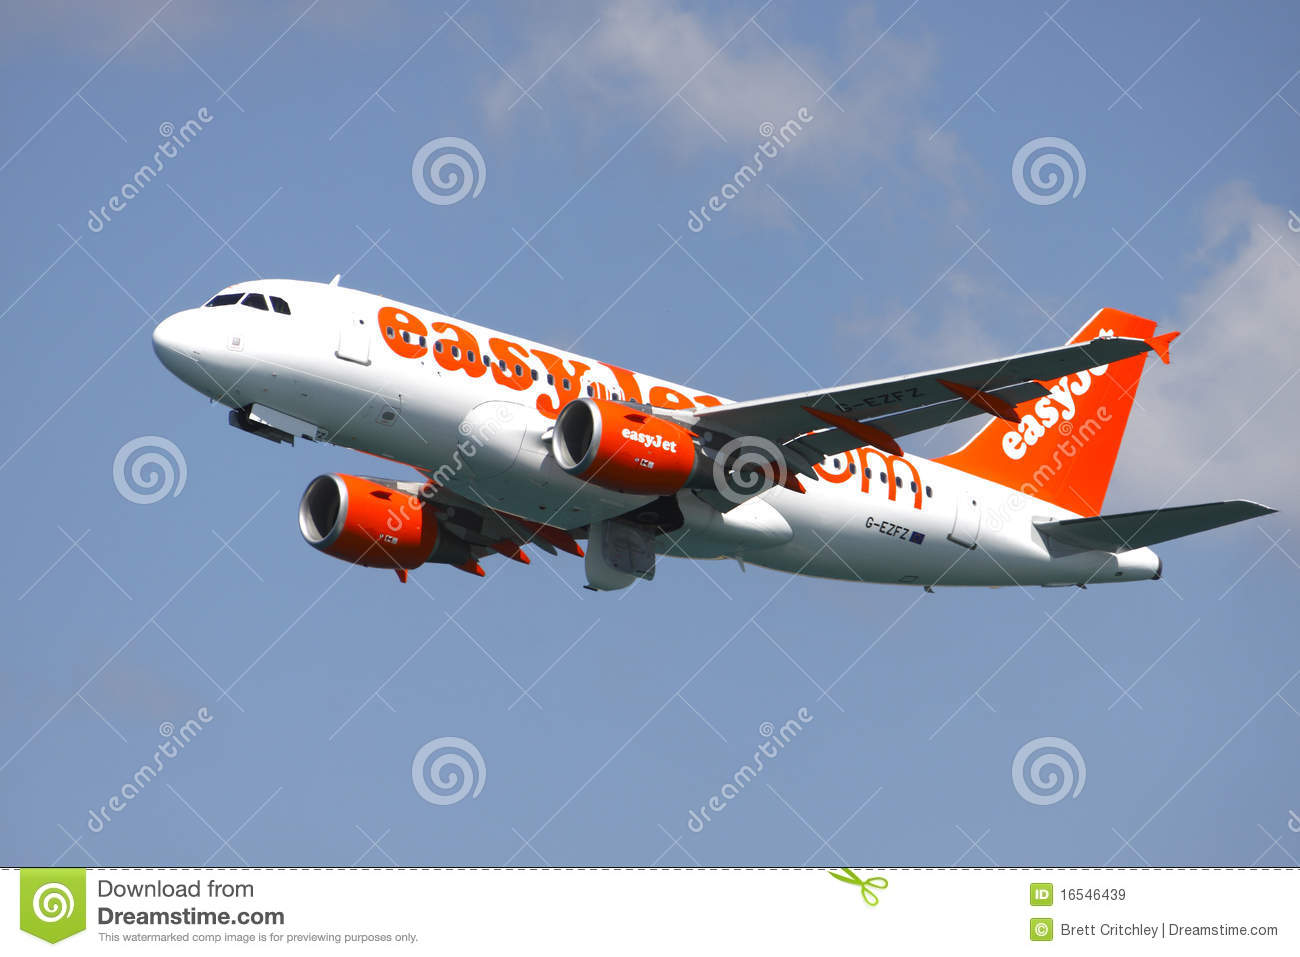 Aeroplane Fly Easyjet Easy Jet Aircraft Editorial Stock Image - Image